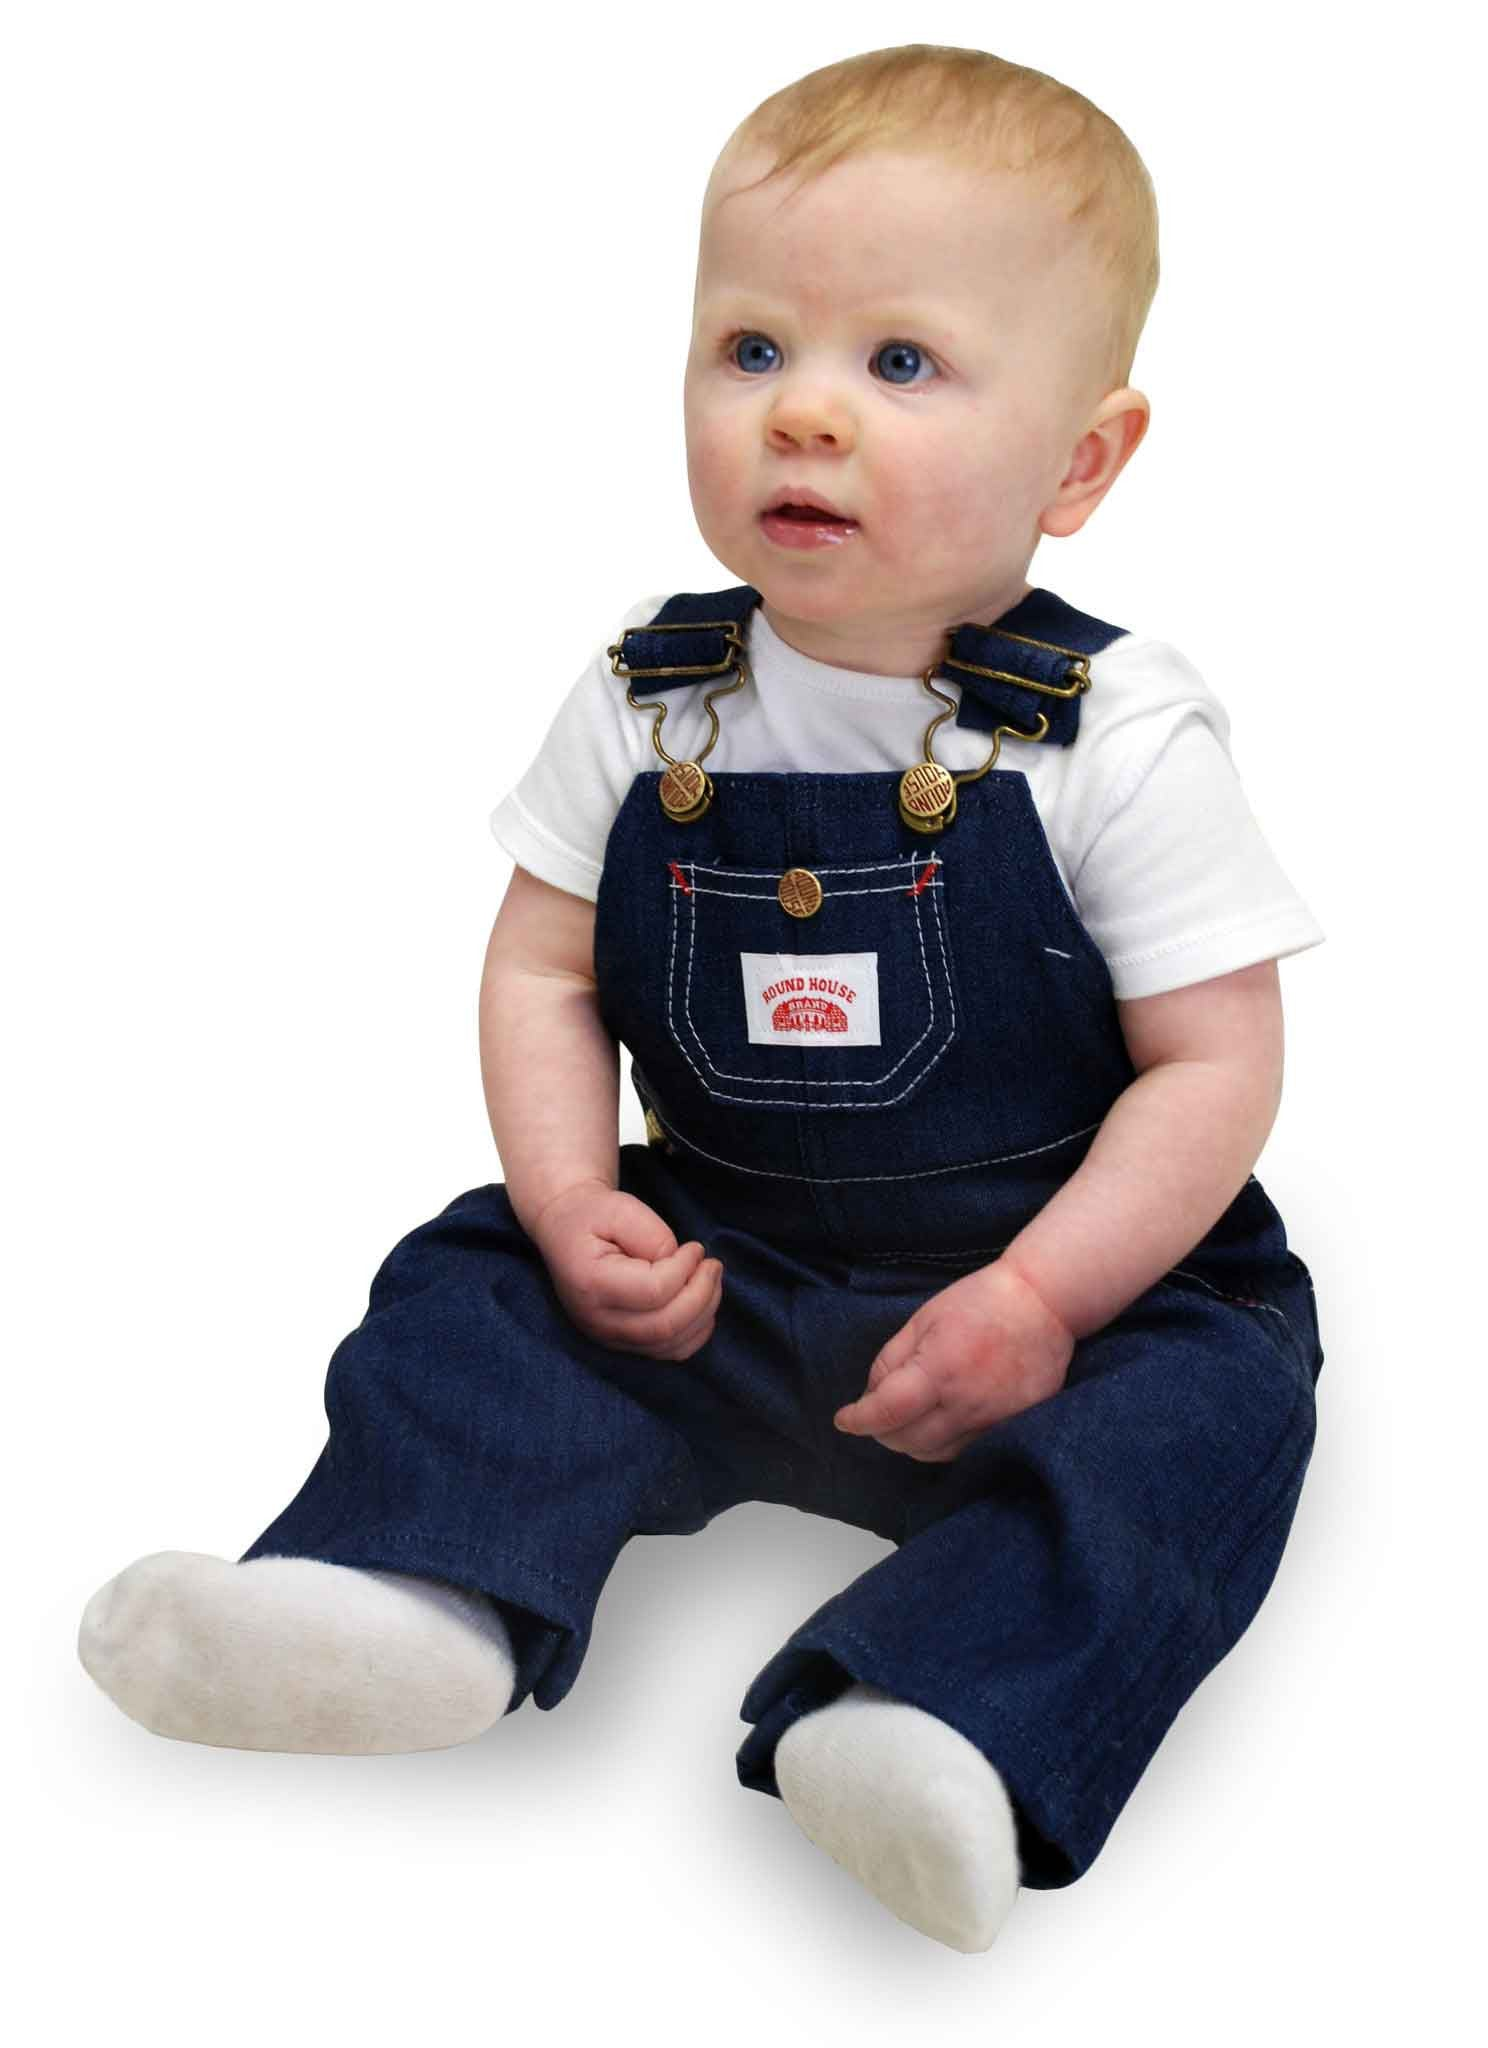 You searched for: boys overalls! Etsy is the home to thousands of handmade, vintage, and one-of-a-kind products and gifts related to your search. No matter what you're looking for or where you are in the world, our global marketplace of sellers can help you find unique and affordable options. Let's get started!